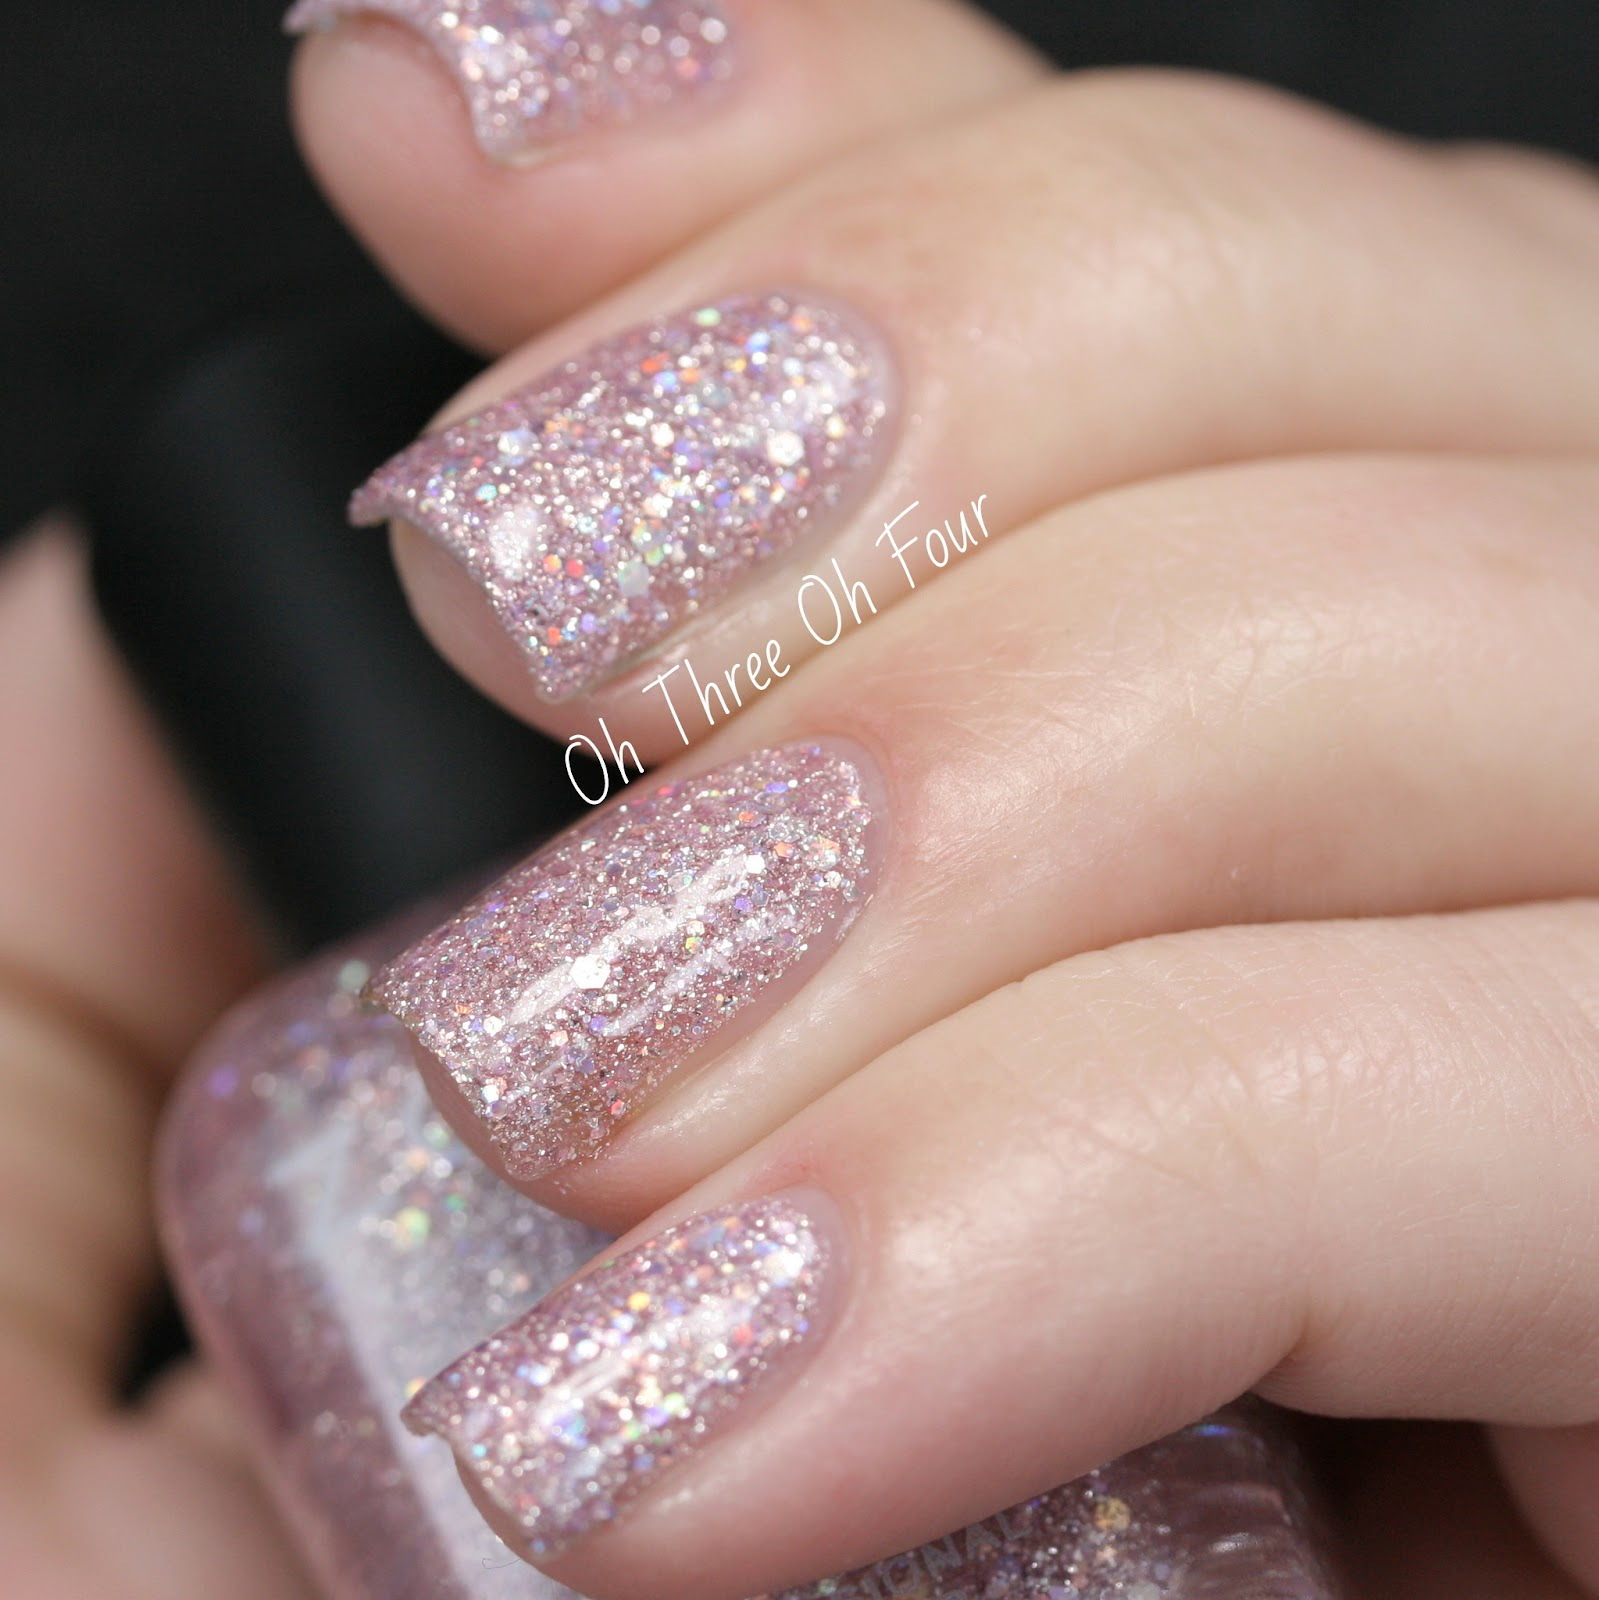 Oh Three Oh Four: Zoya Magical PixieDust Collection Reviews & Swatches